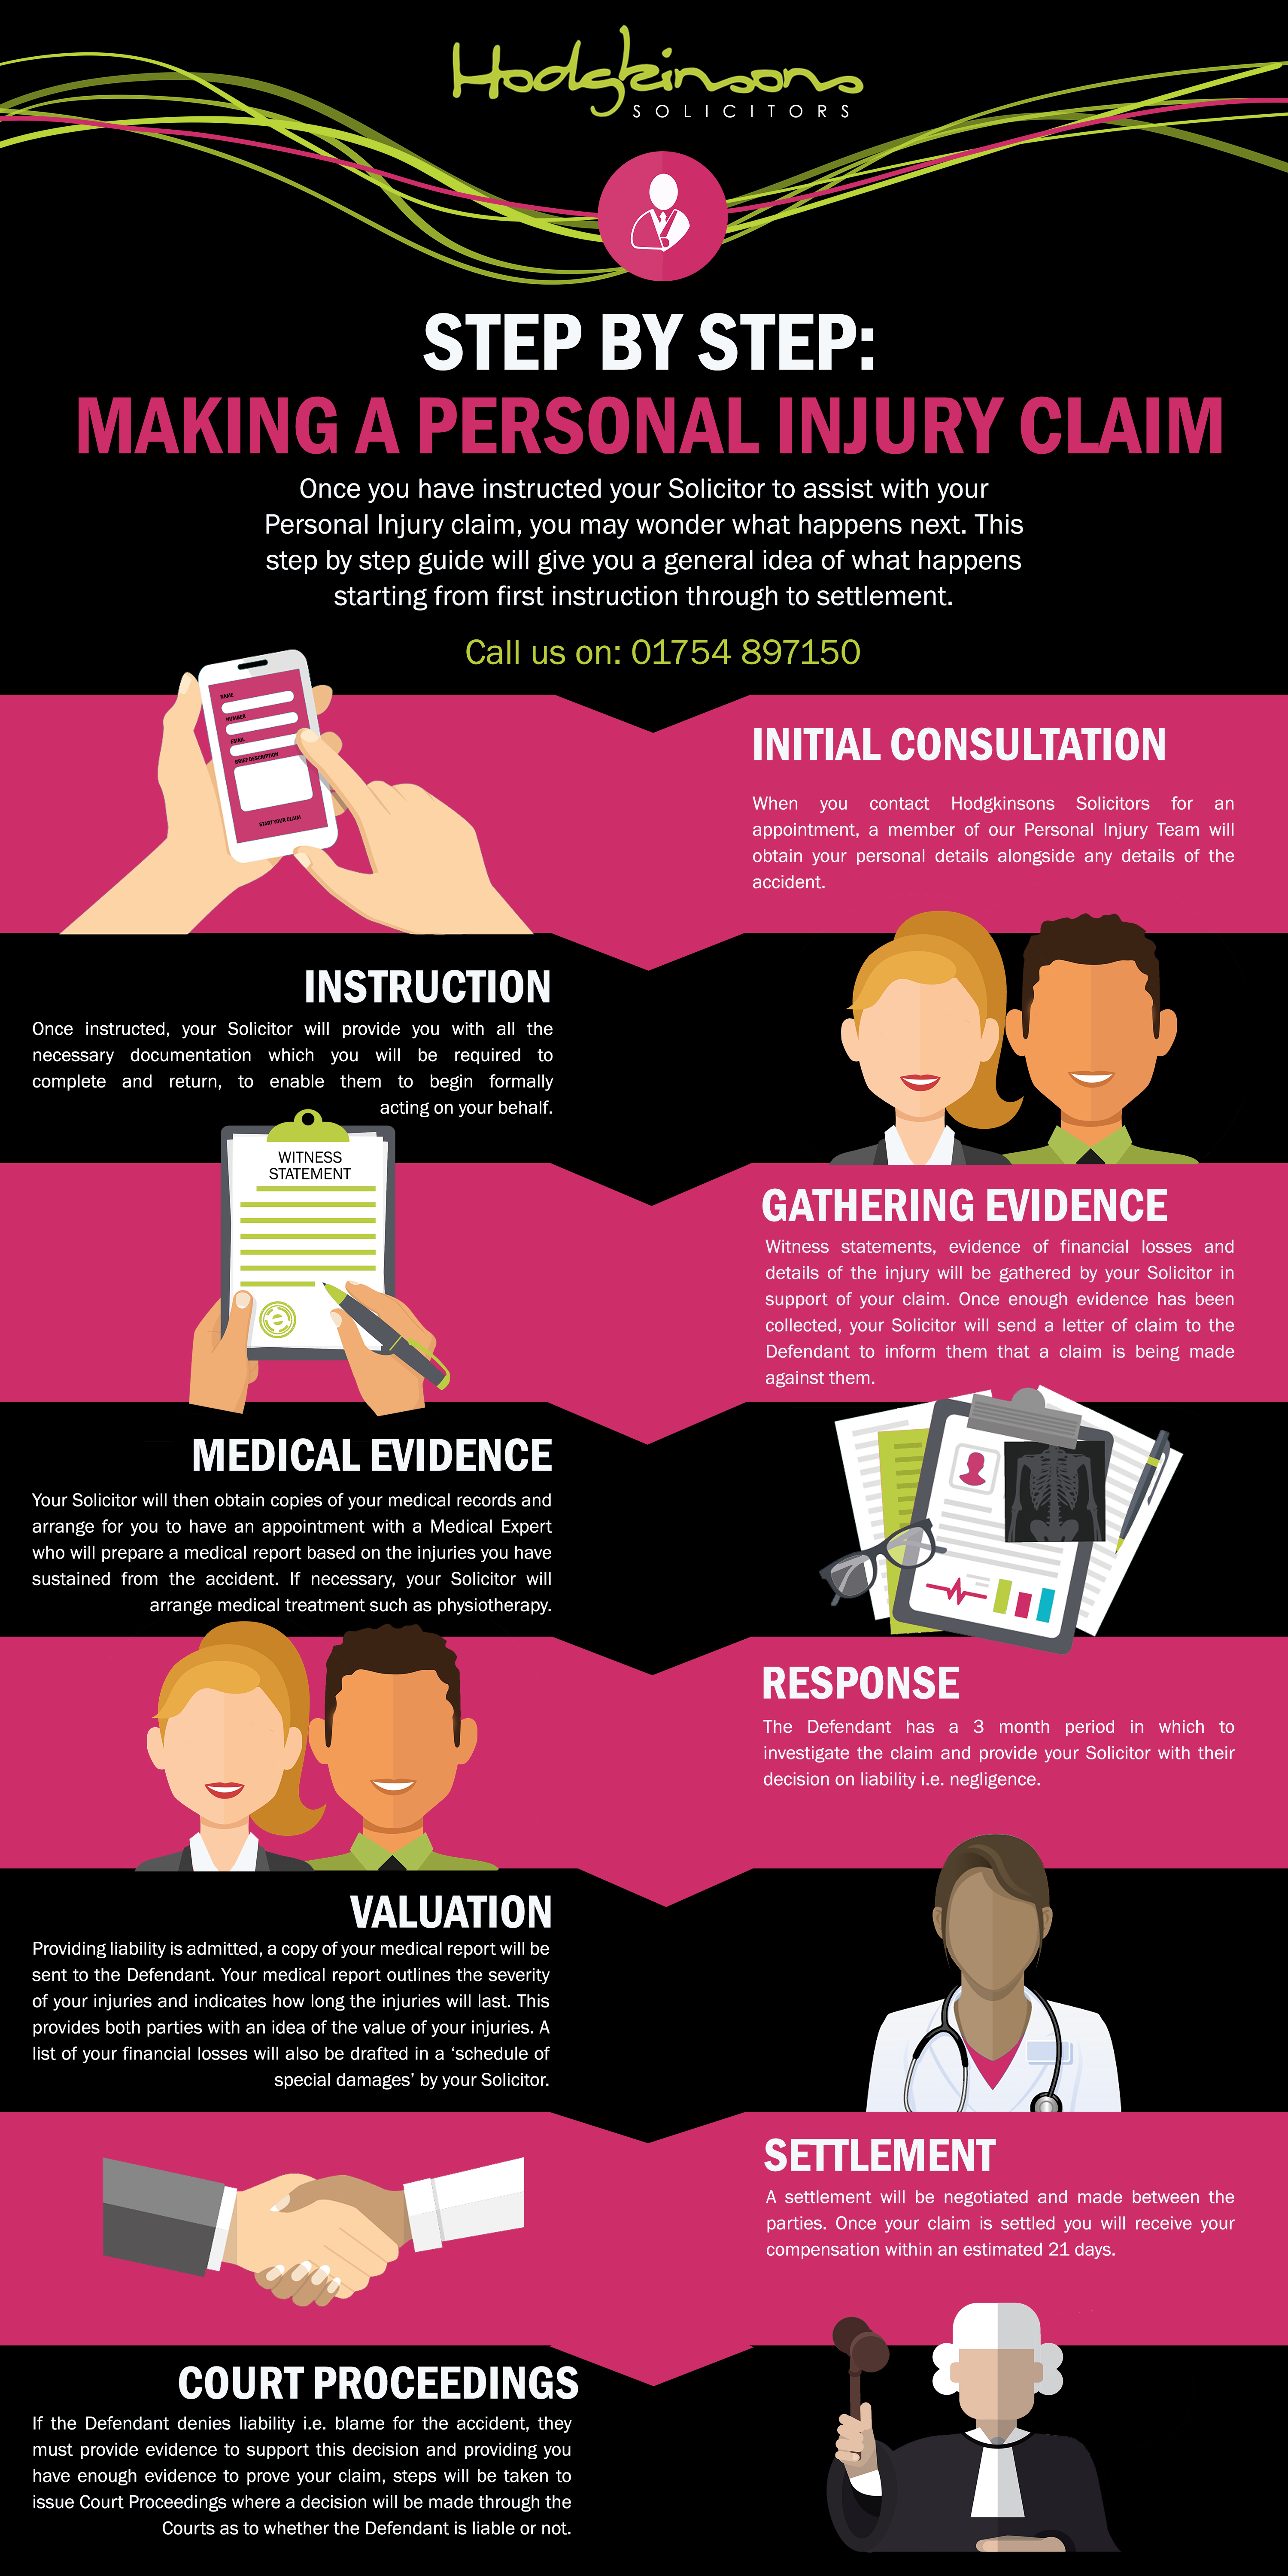 How To Make A Personal Injury Claim With Hodgkinsons